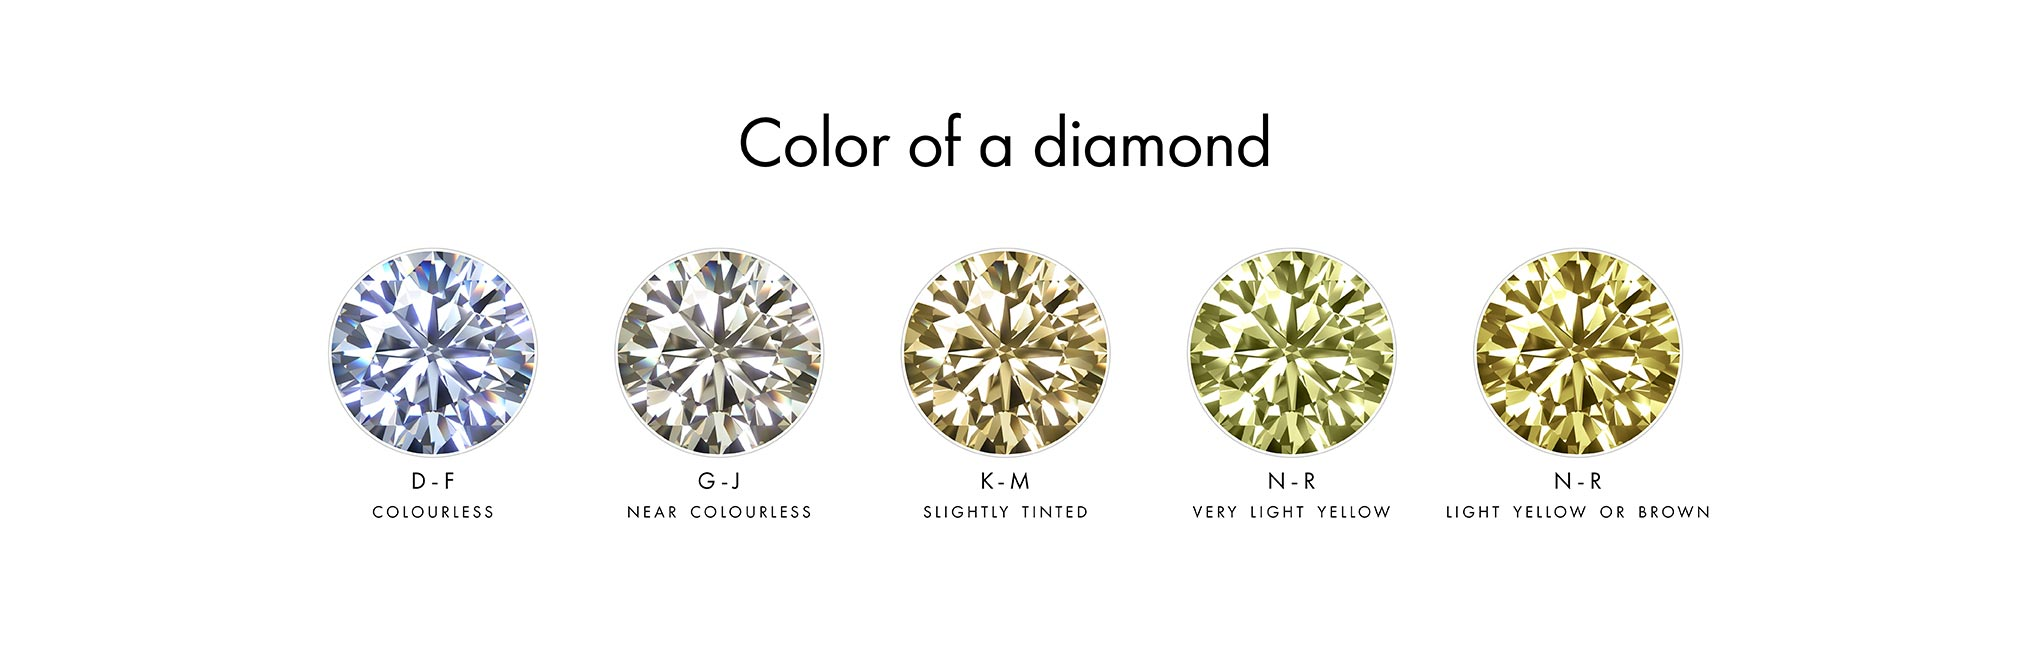 types of diamonds color